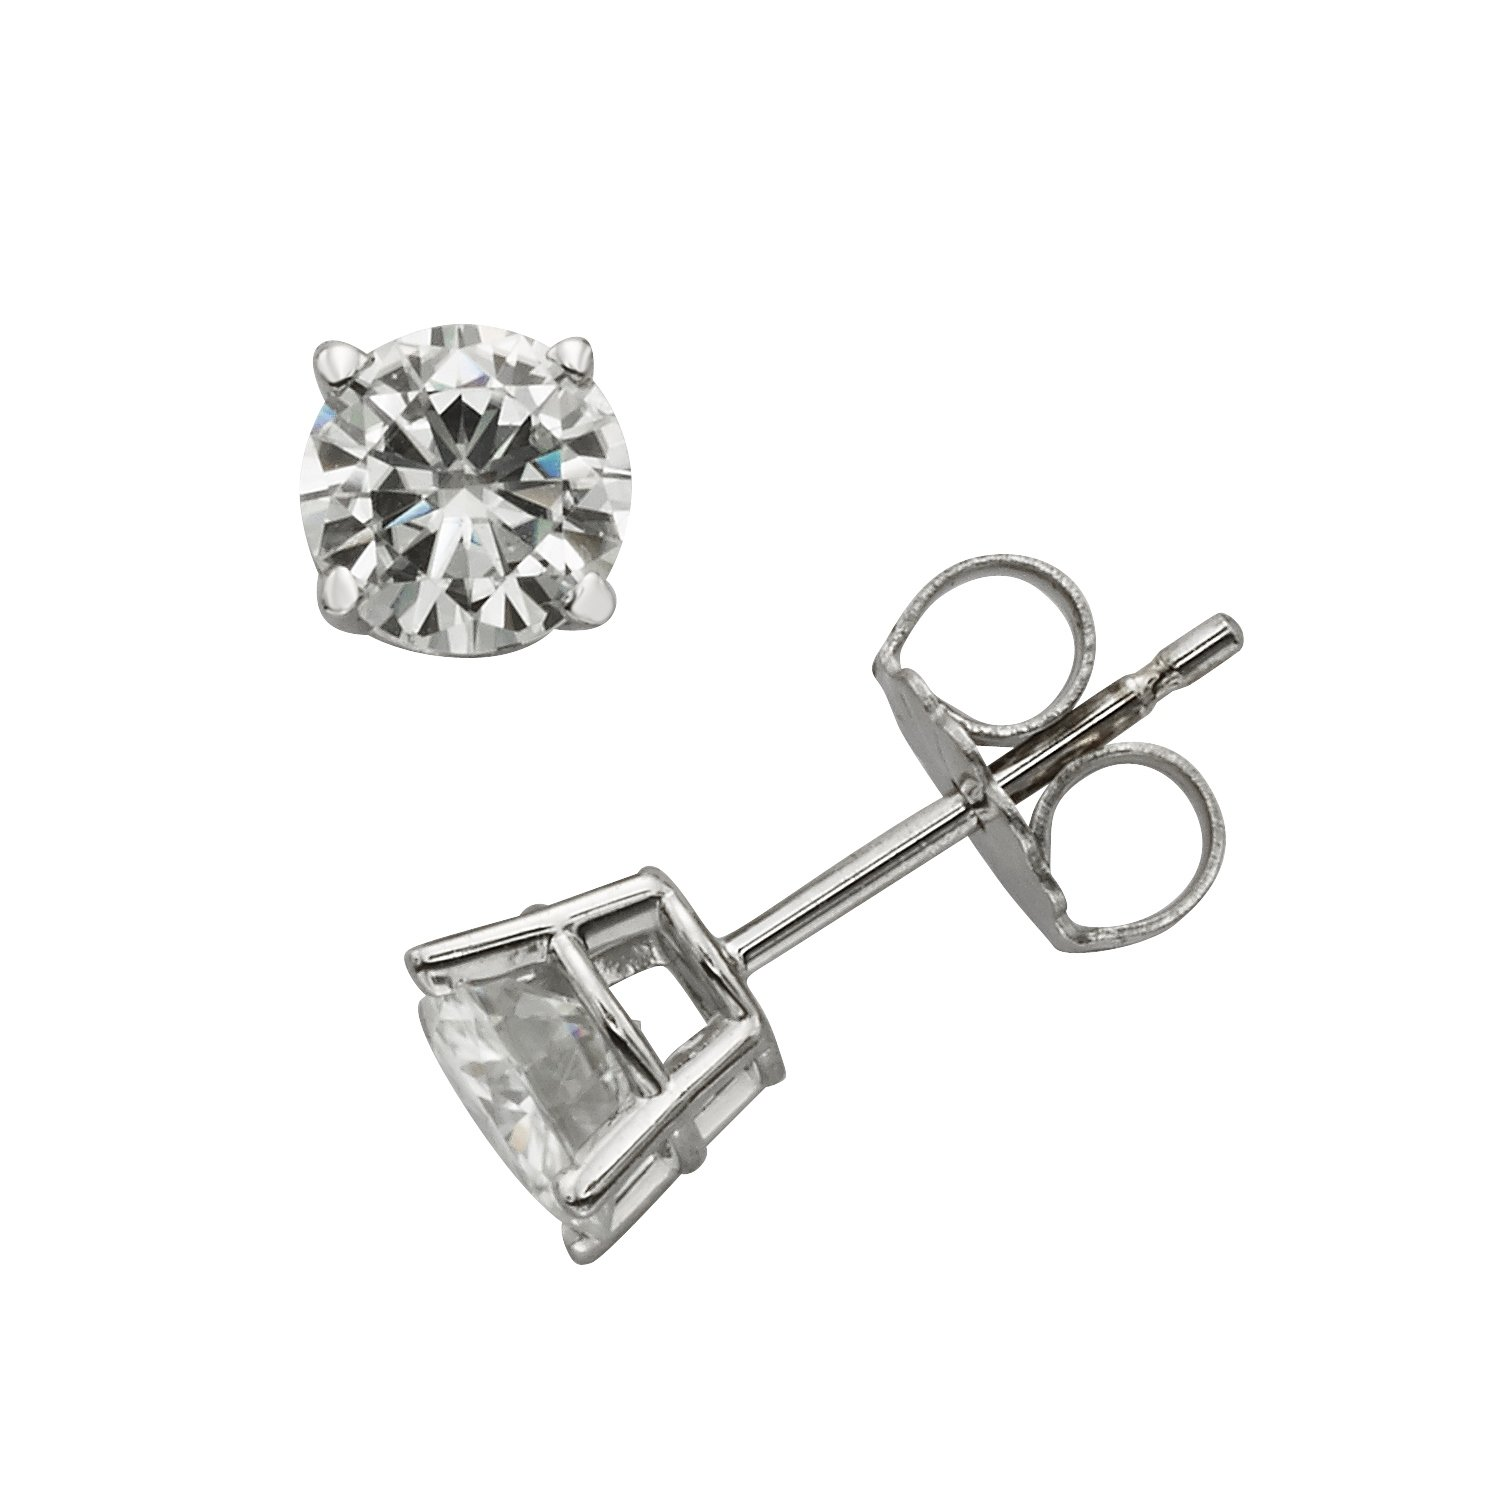 Forever Classic 5.0mm Round Cut Moissanite Stud Earrings, 1.00cttw DEW By Charles & Colvard